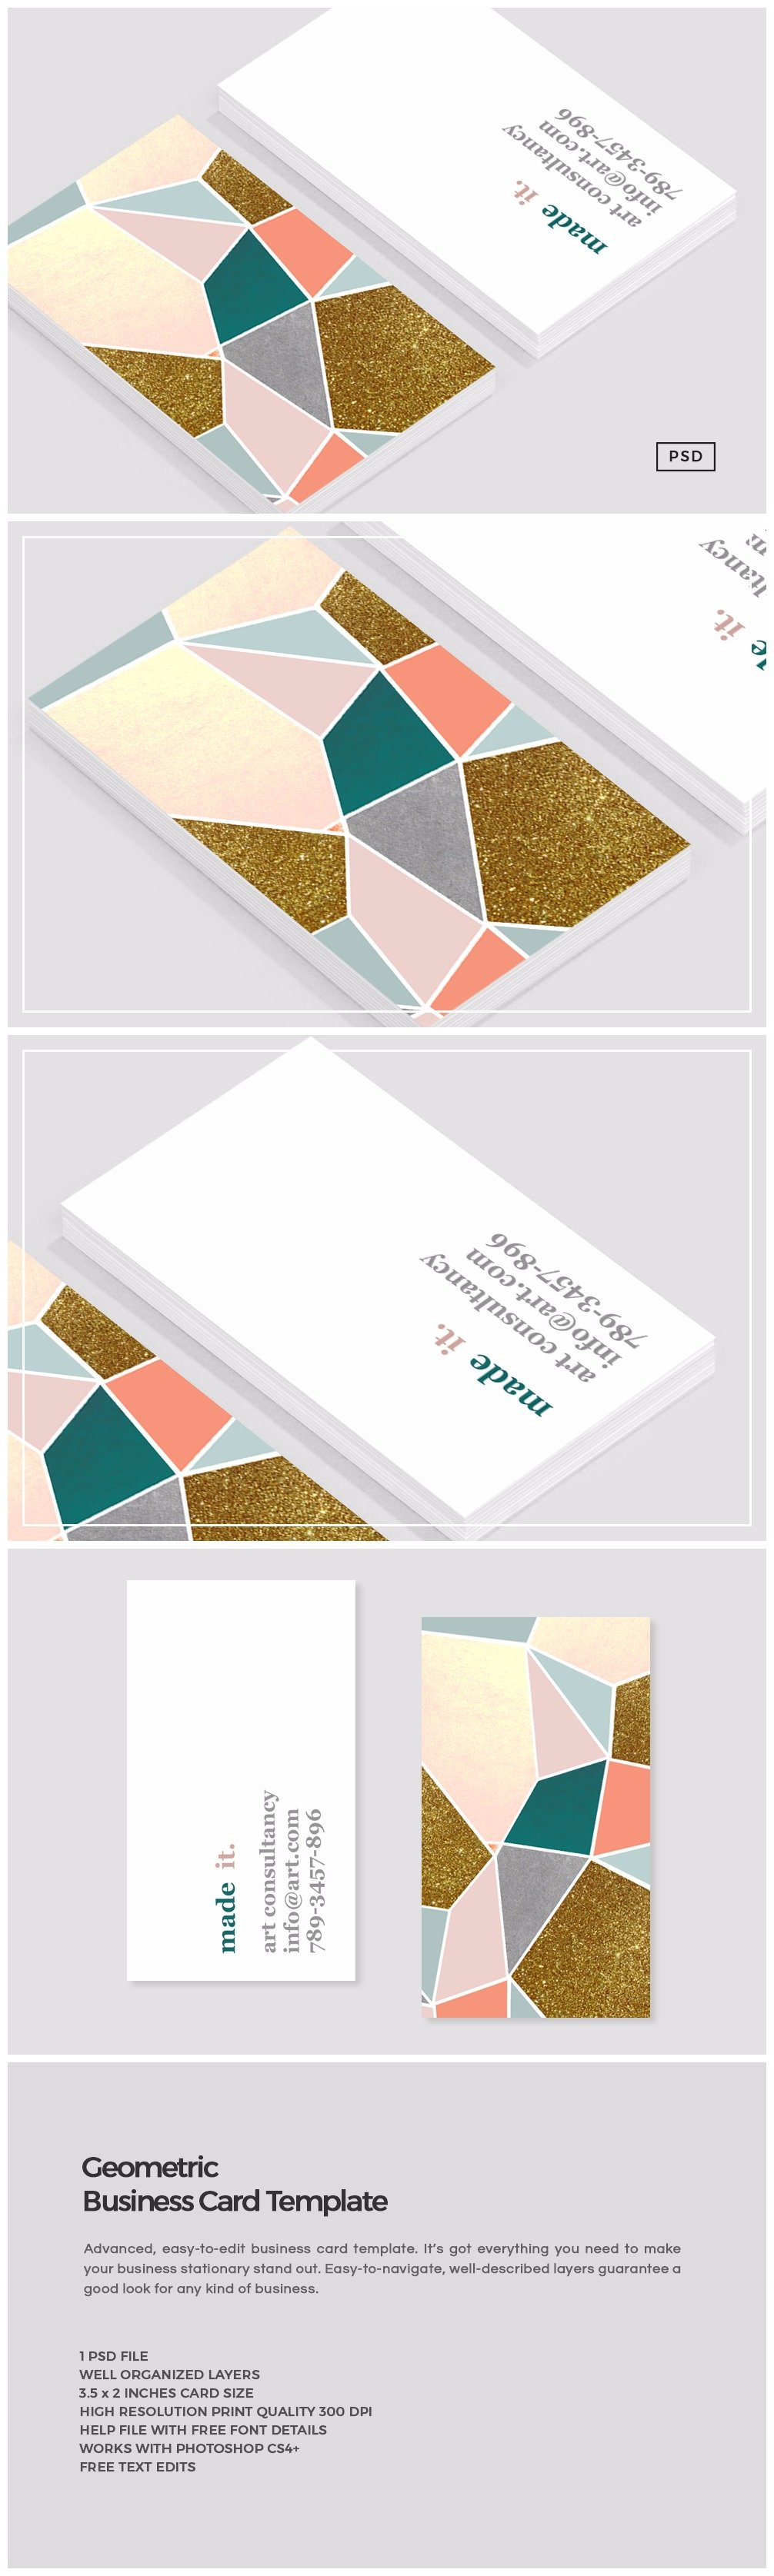 Geometric Business Card Template Business Card Templates - Got print business card template